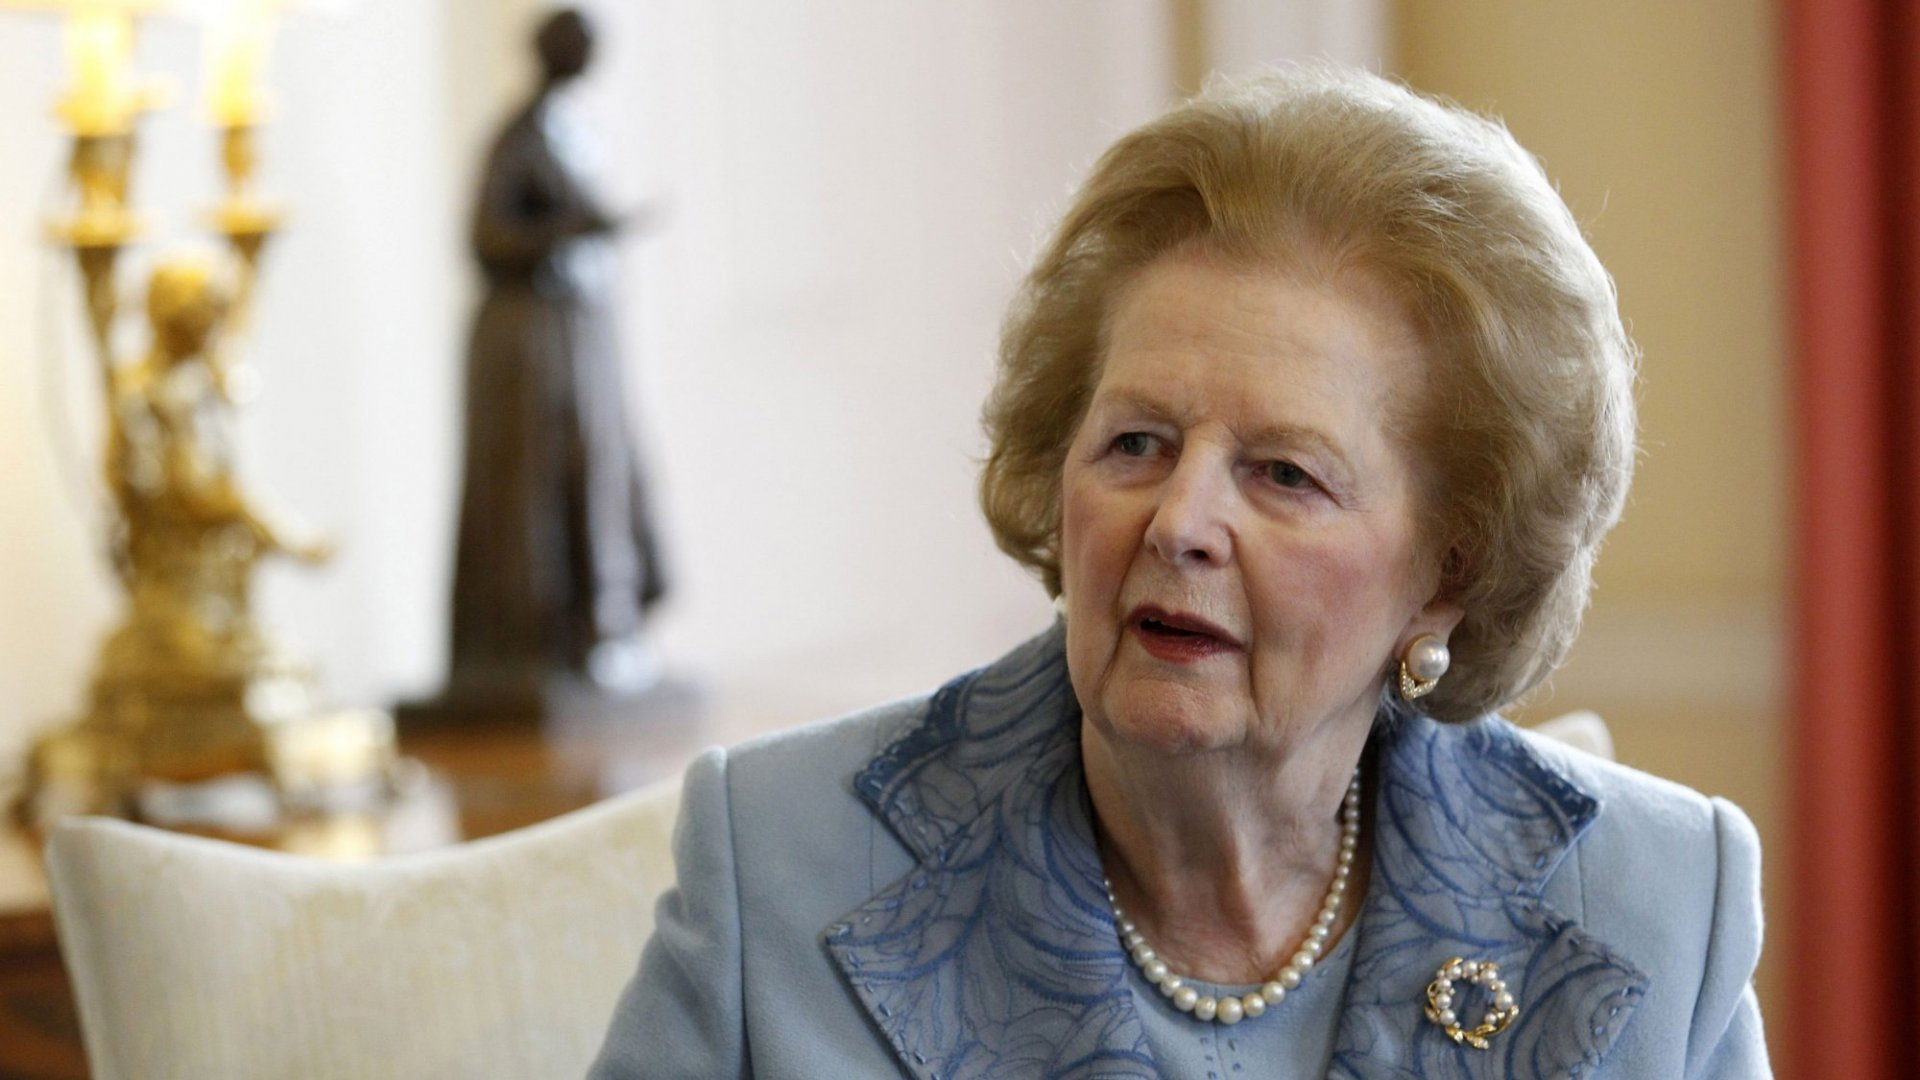 Use These 3 Vocal Techniques to Command the Room Like Margaret Thatcher and Obama